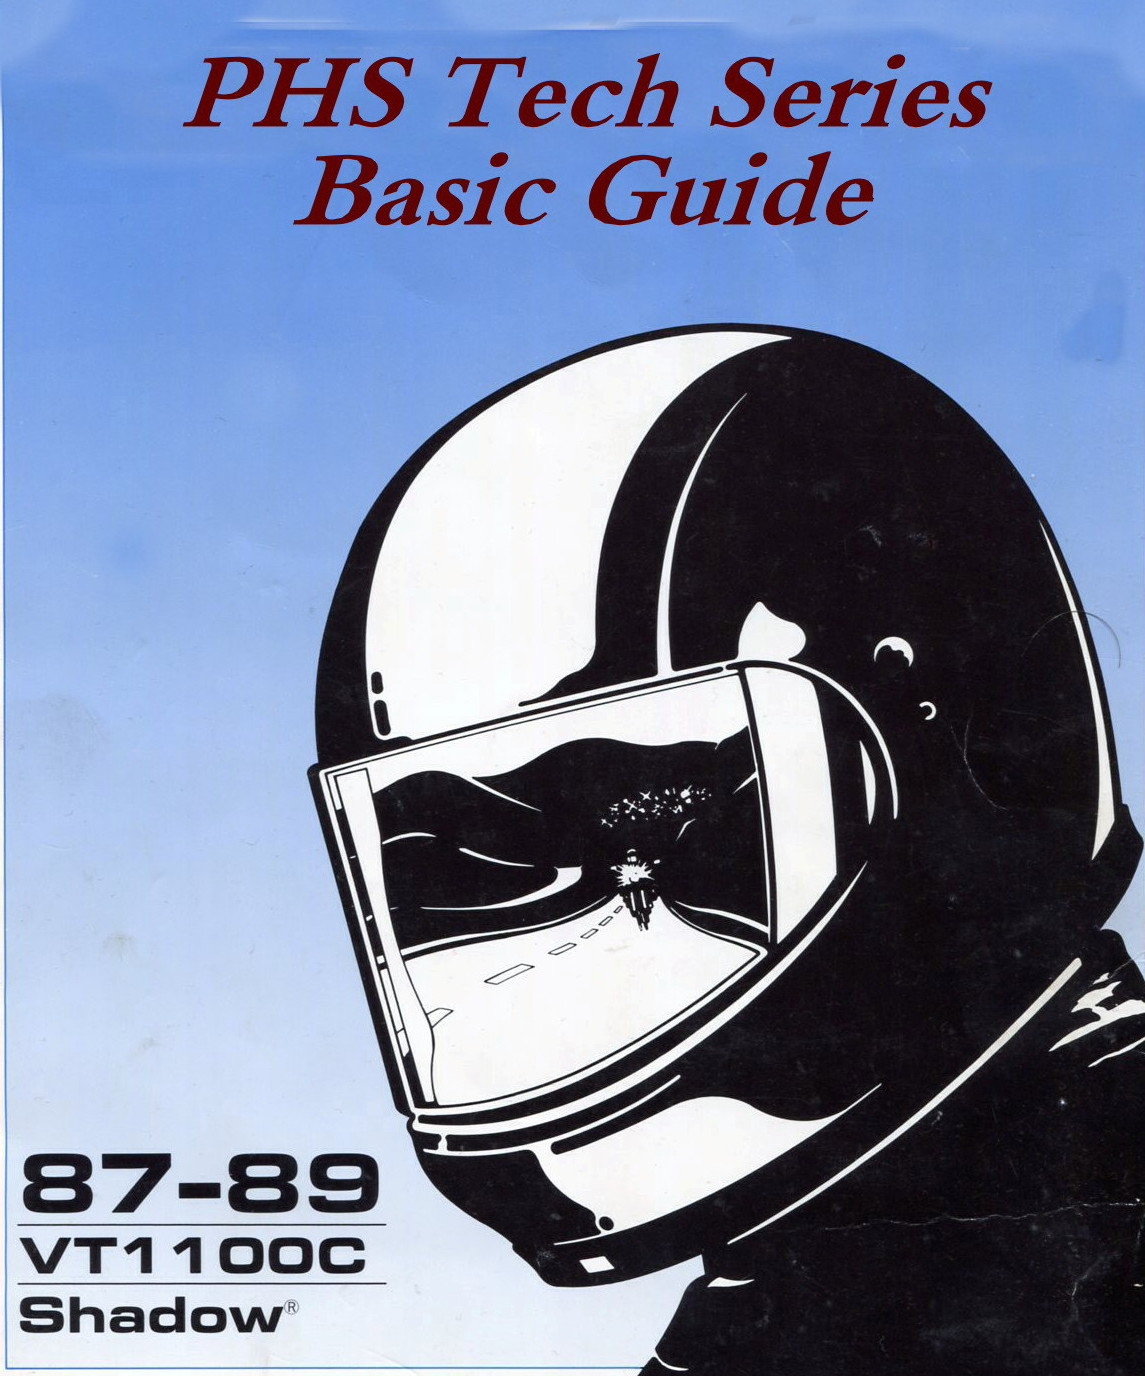 Tech Series Honda Shadow Motorcycle Guide Phscollectorcarworld 1992 Parts Introduced In 1983 To Tap Into The American Cruiser Market Hondas Bike Was Limited At First About 700 Cc Due Tariff On